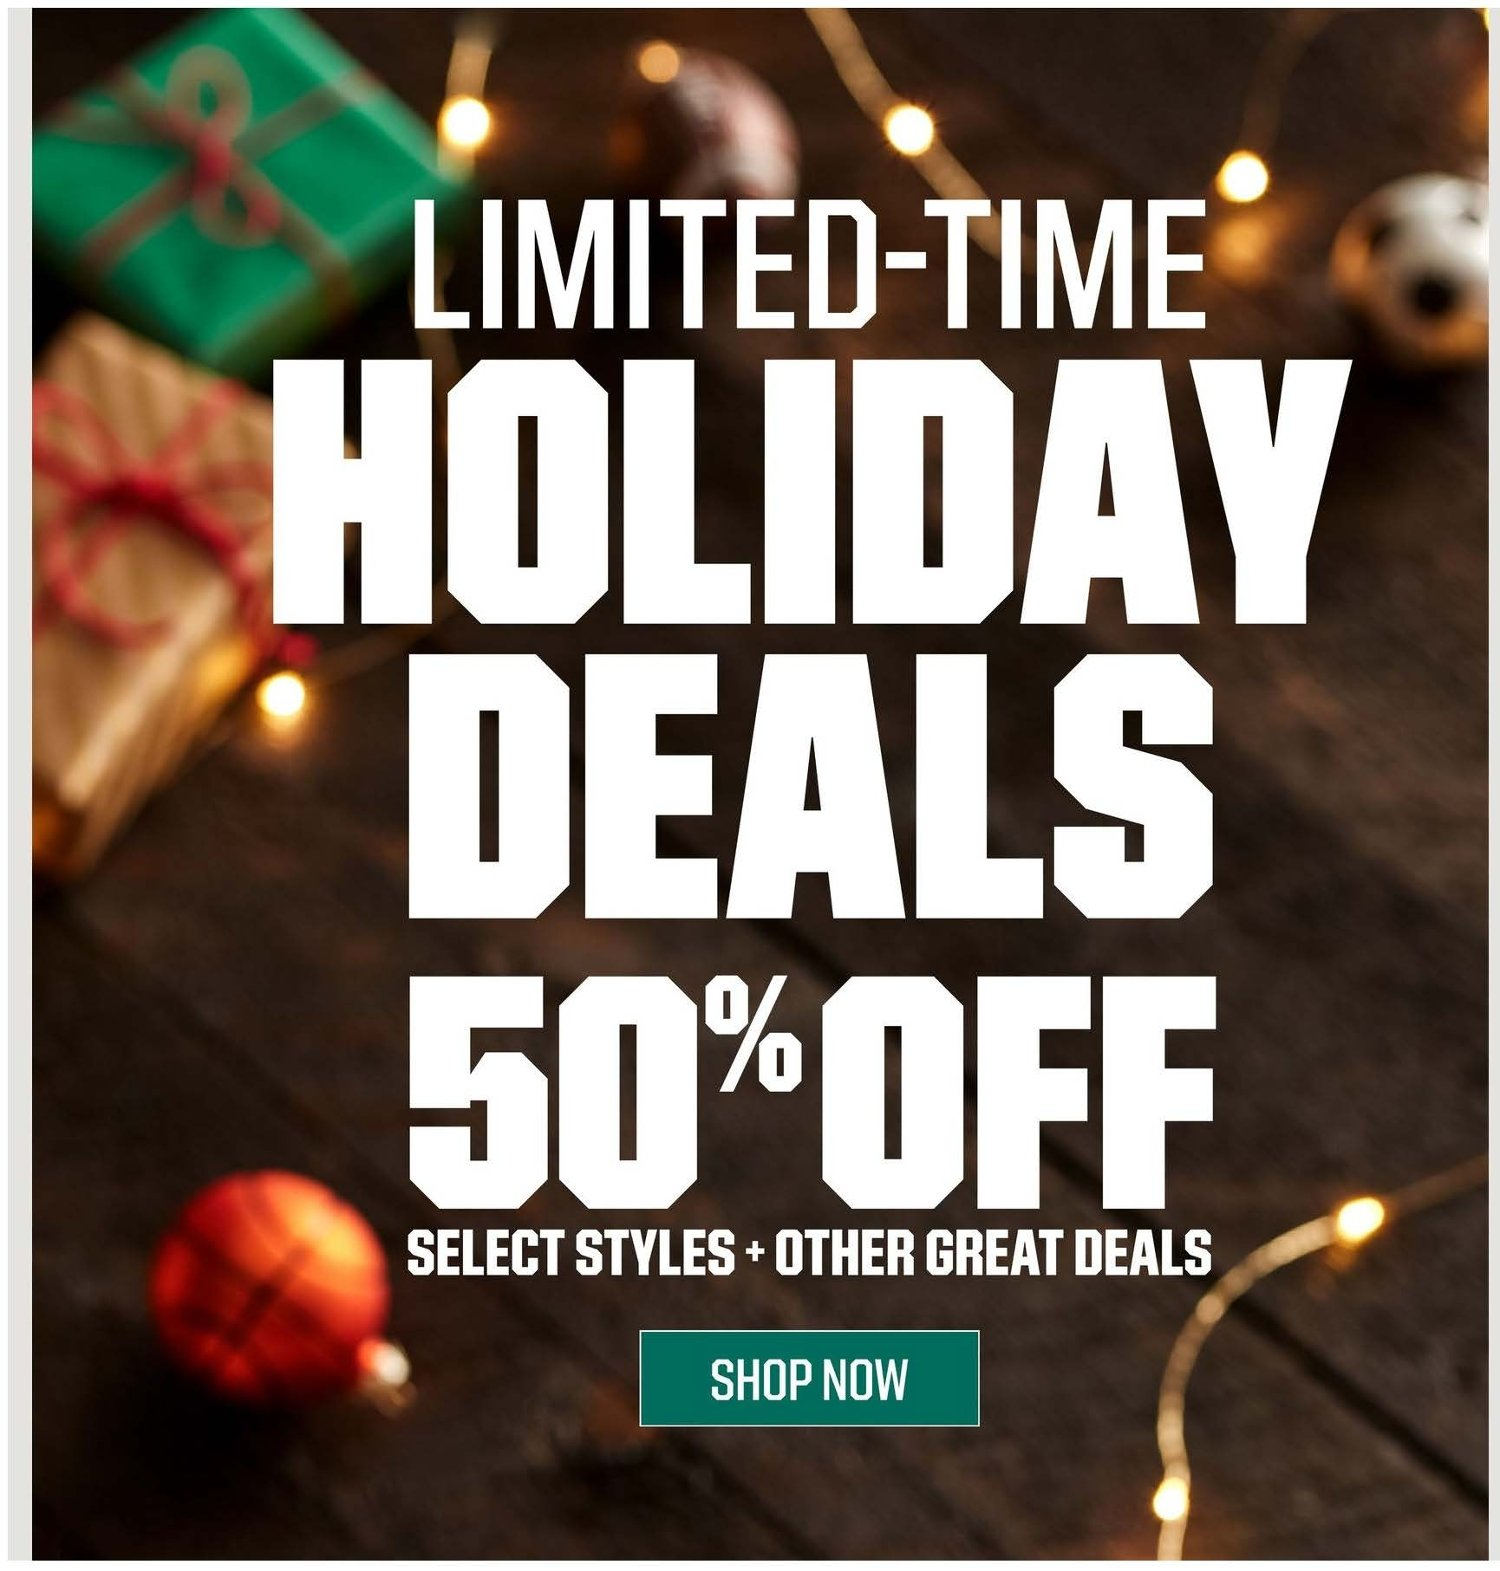 Dick's Sporting Goods Cyber Monday 2019 Page 14